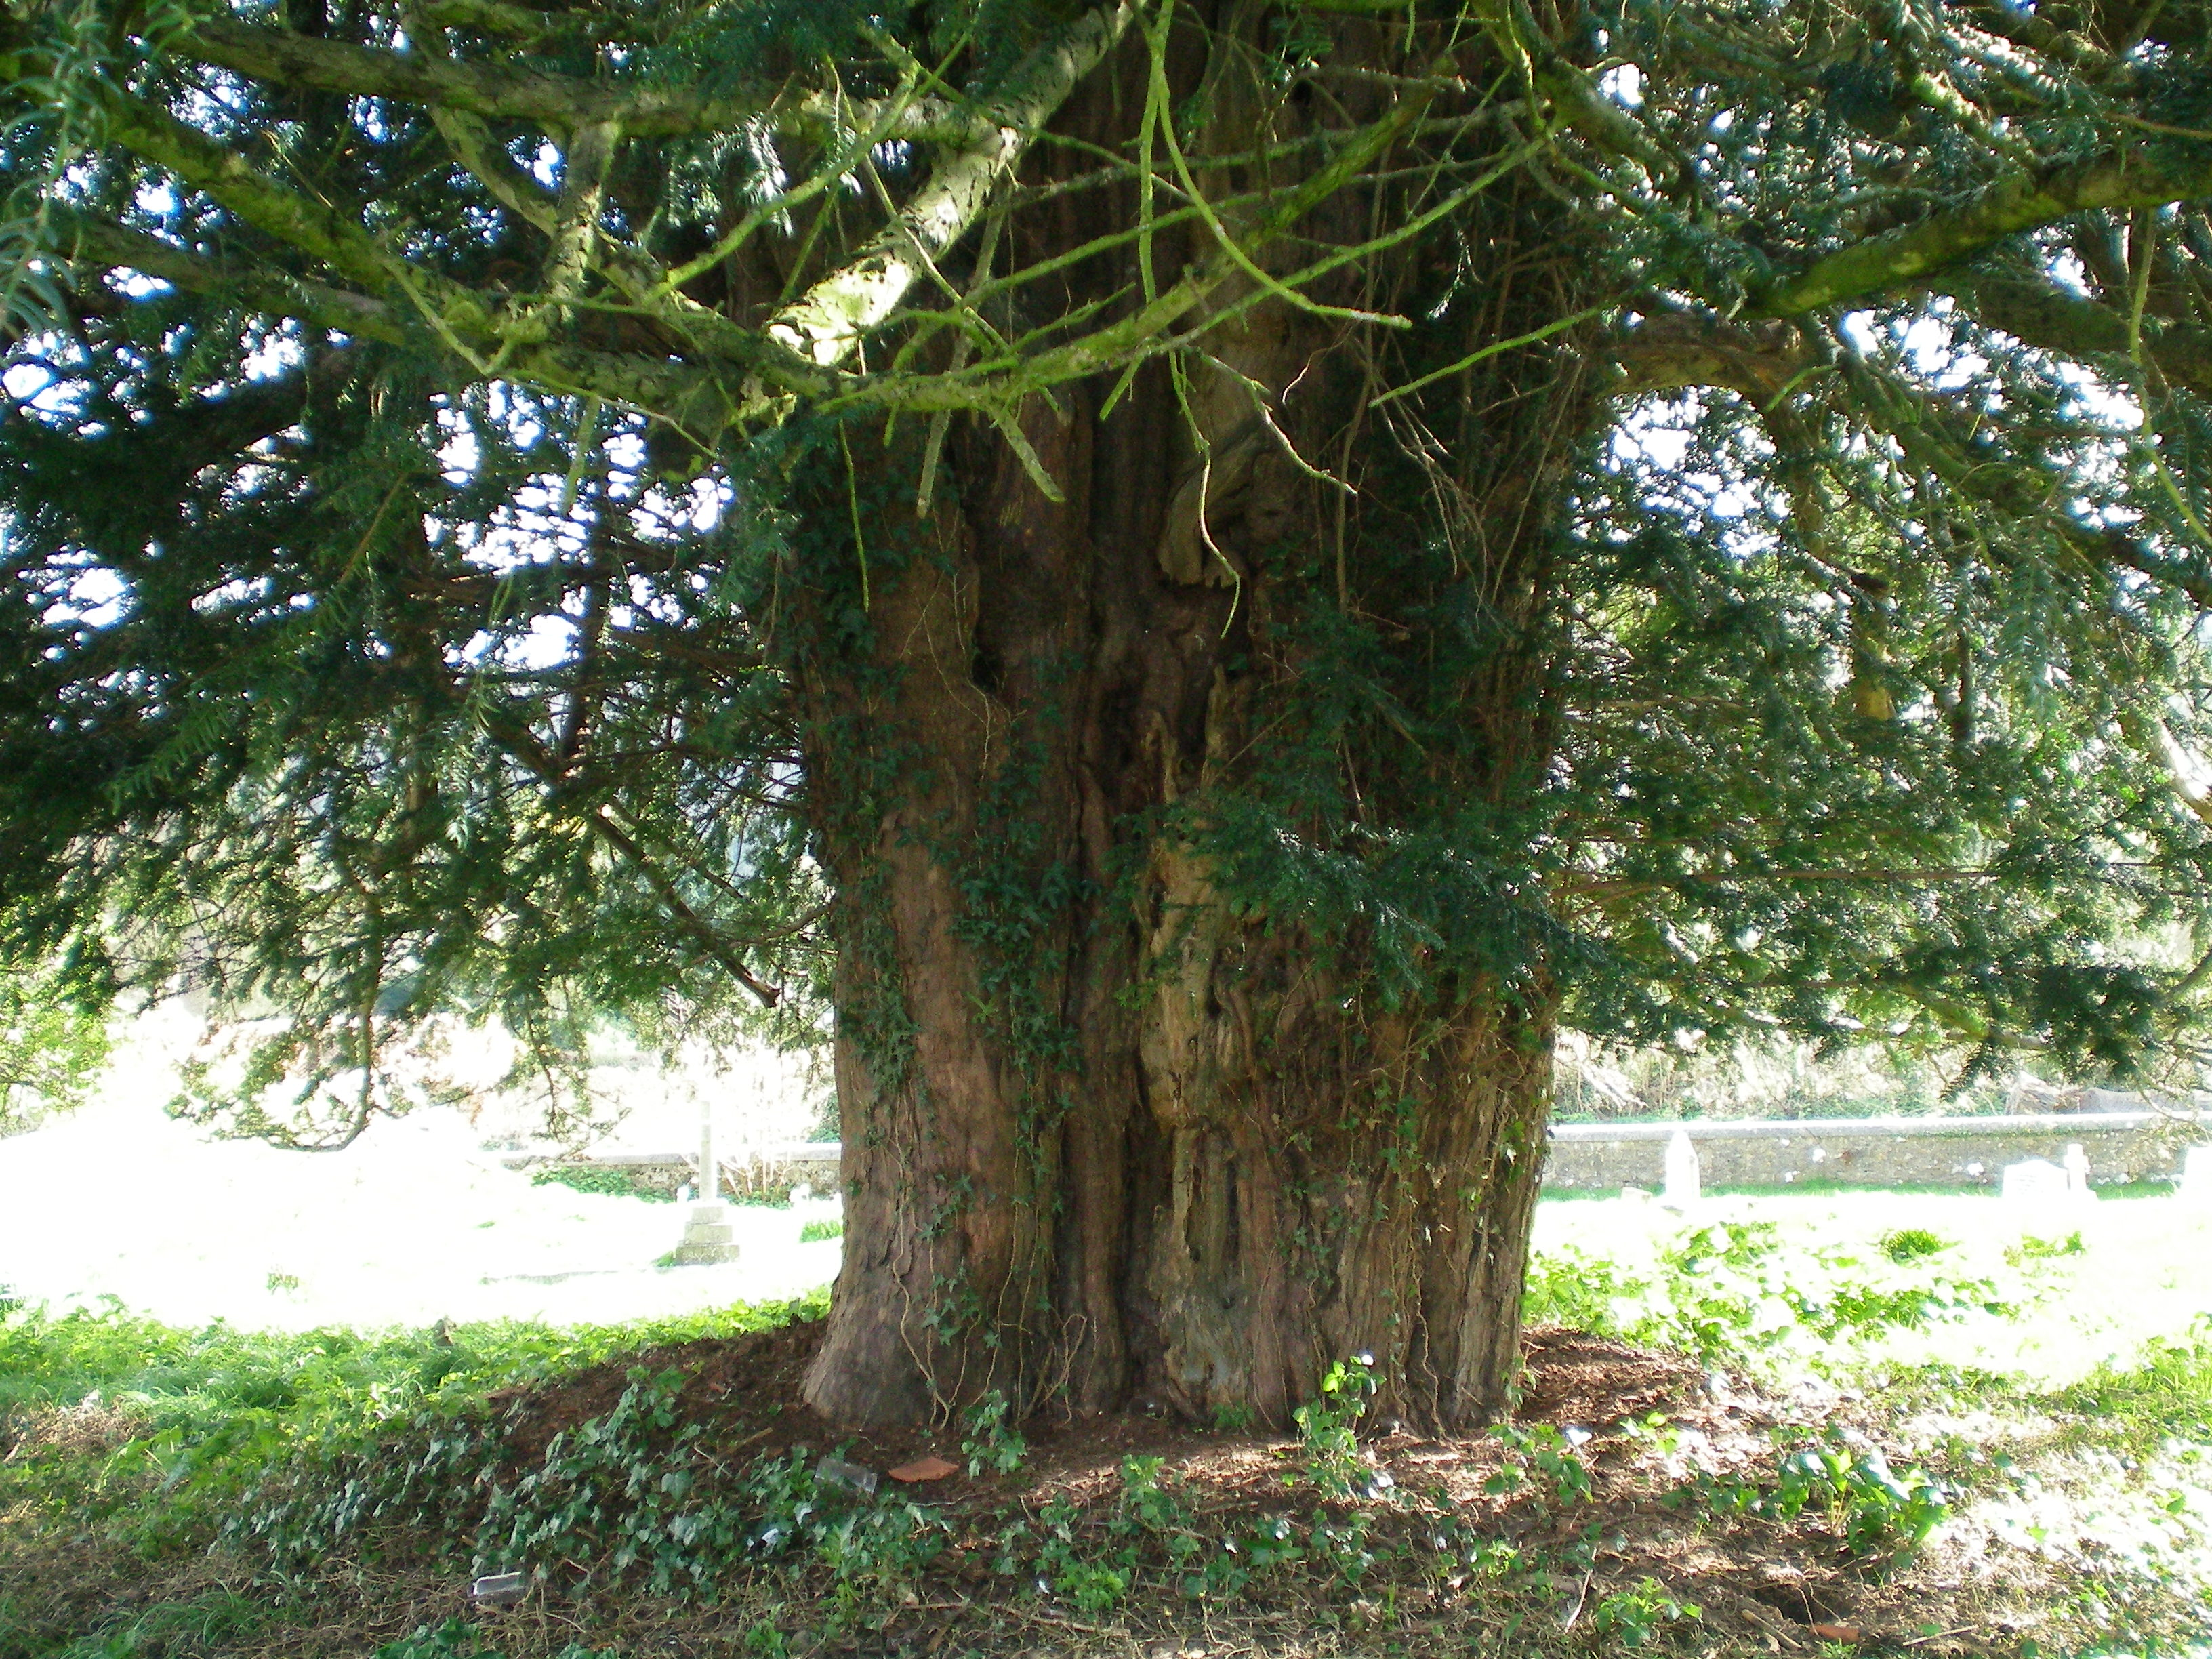 Bignor Church yew tree, West Sussex, England. (Wikimedia Commons)